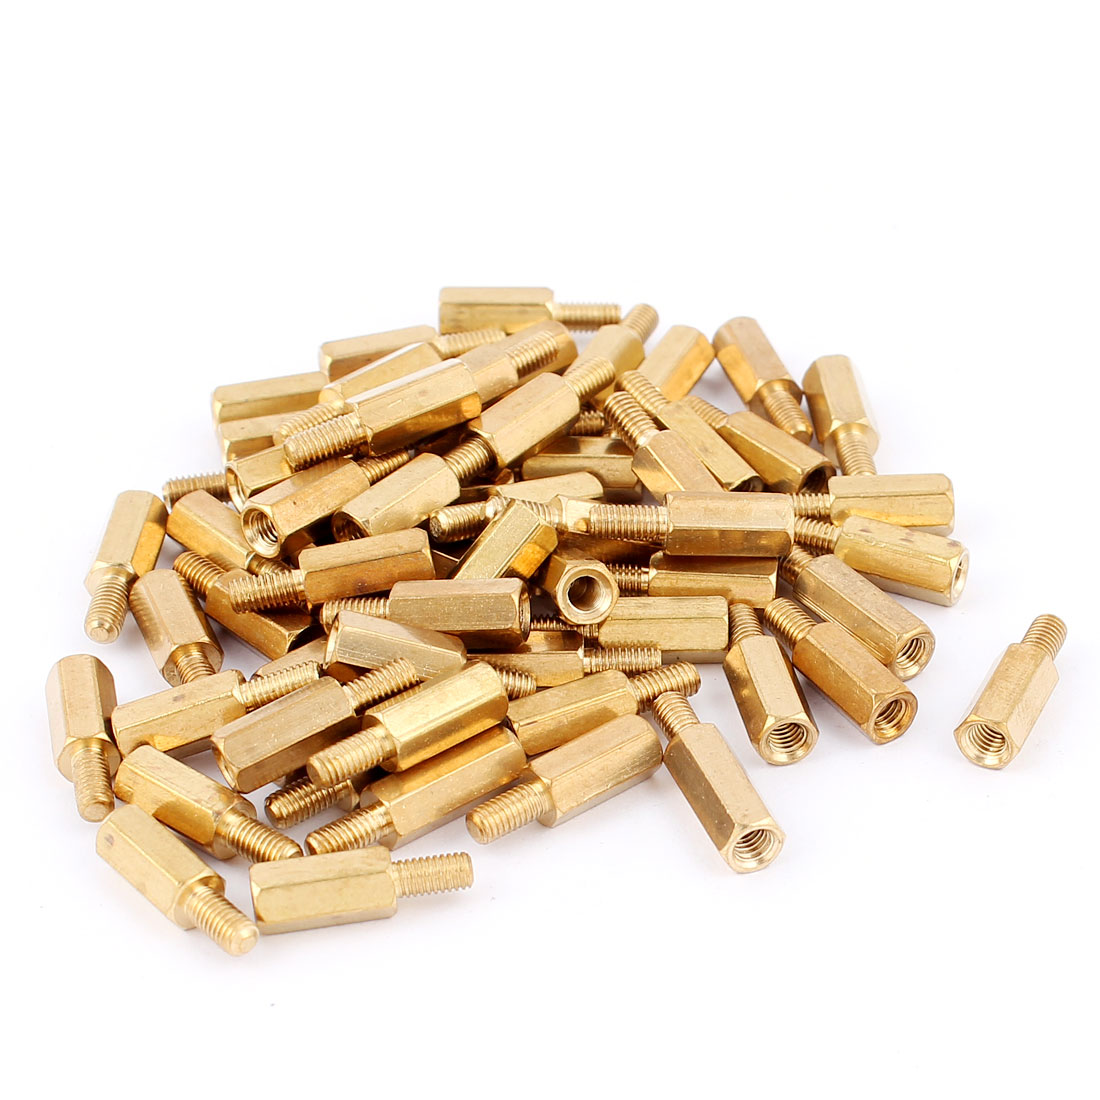 50Pcs M3 10mm+6mm Male to Female Brass Hex Standoff Spacer Pillar for PCB Motherboard